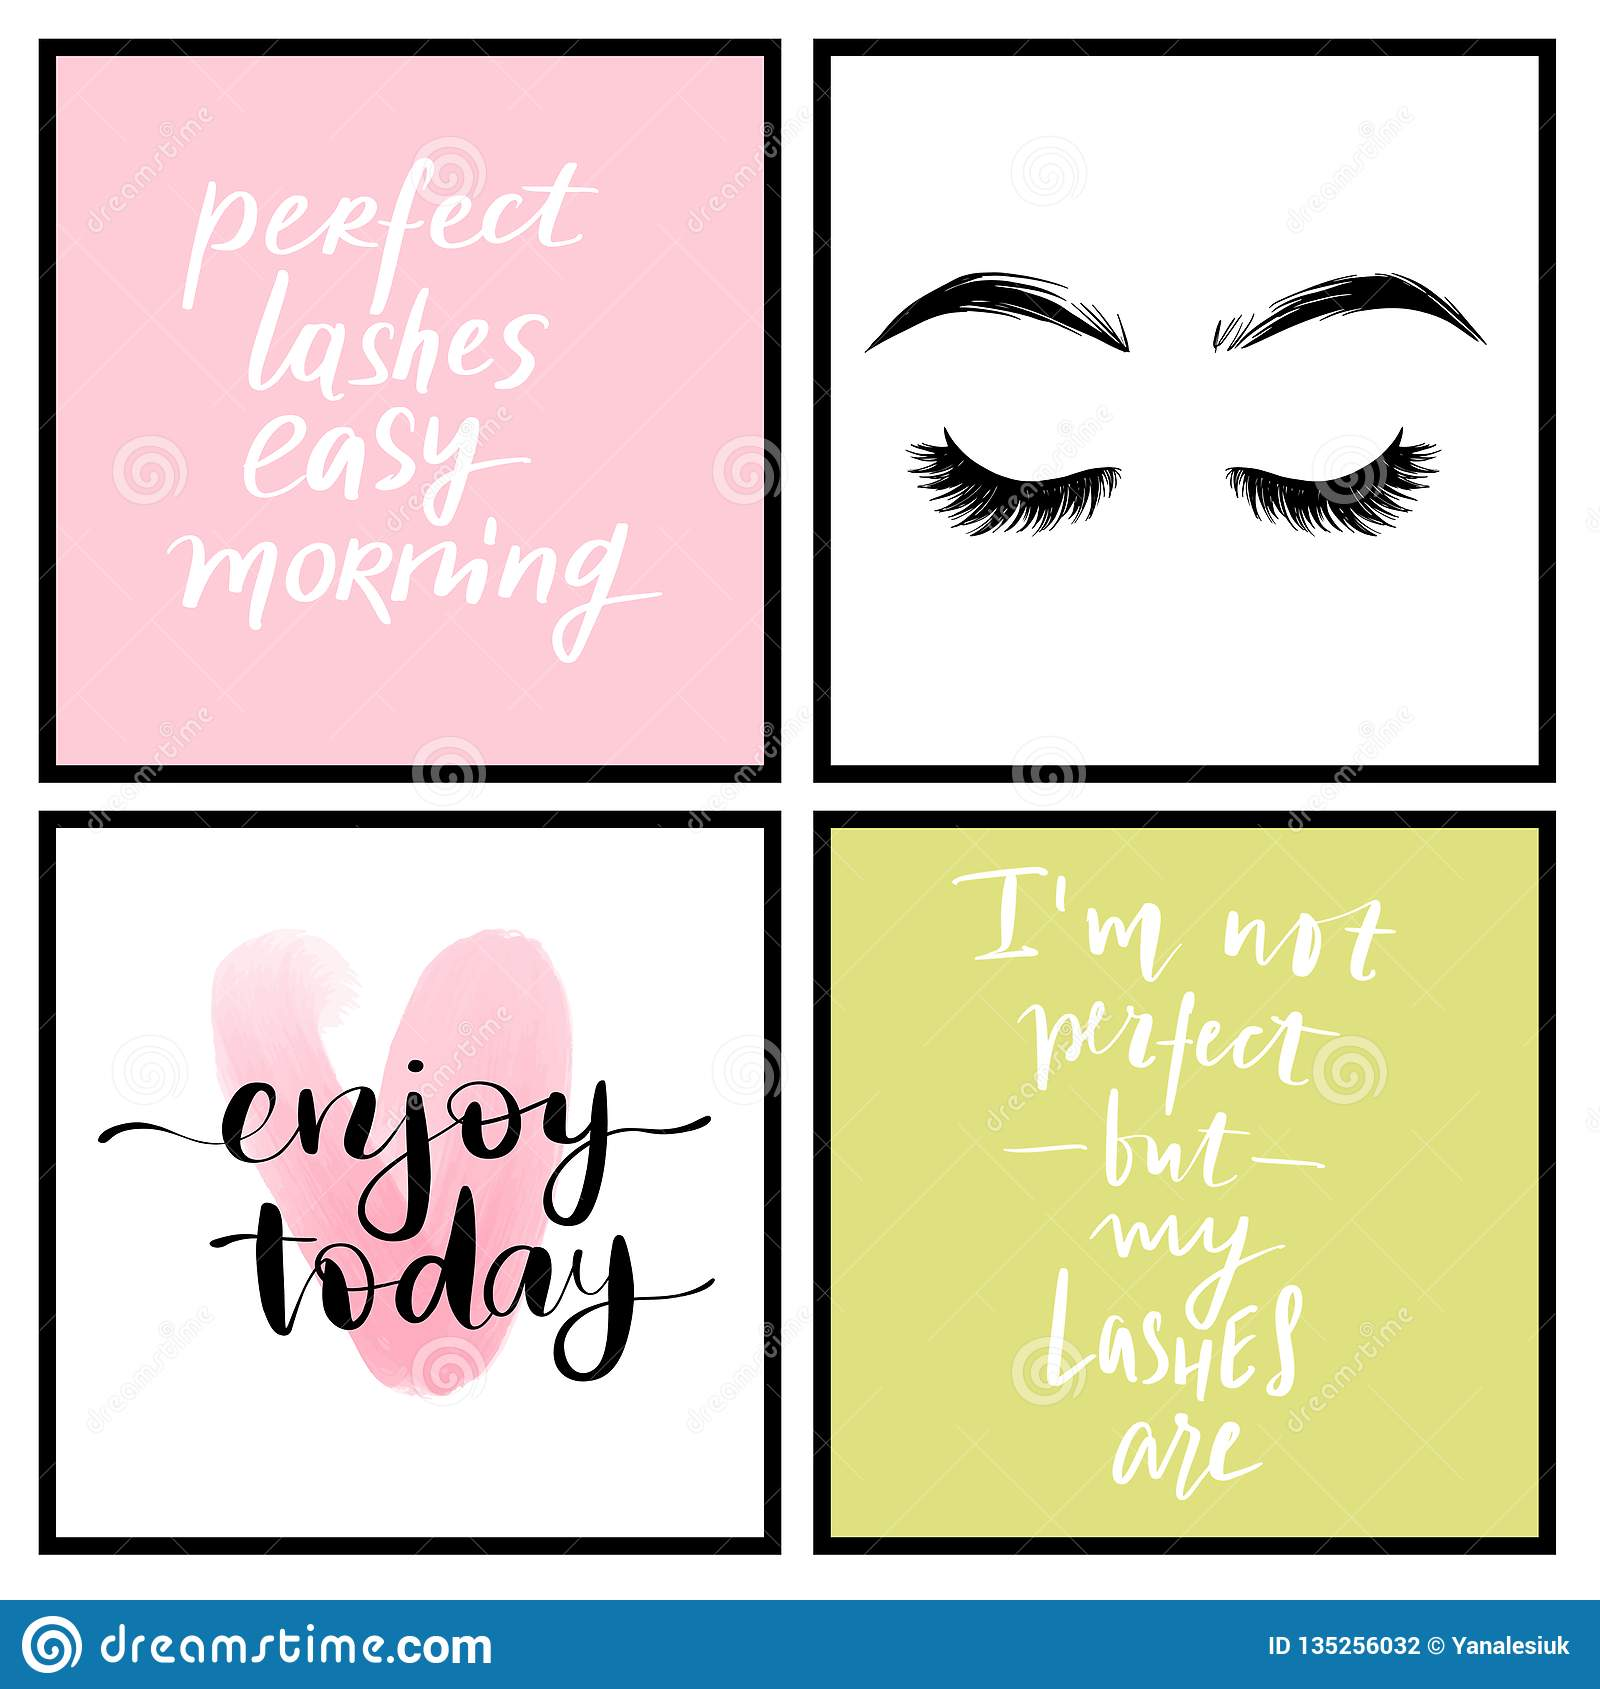 Vector Fashion Posters With Positive Quotes Home Decor Photo Frame With Inspirational Phrases Stock Vector Illustration Of Brush Lashes 135256032